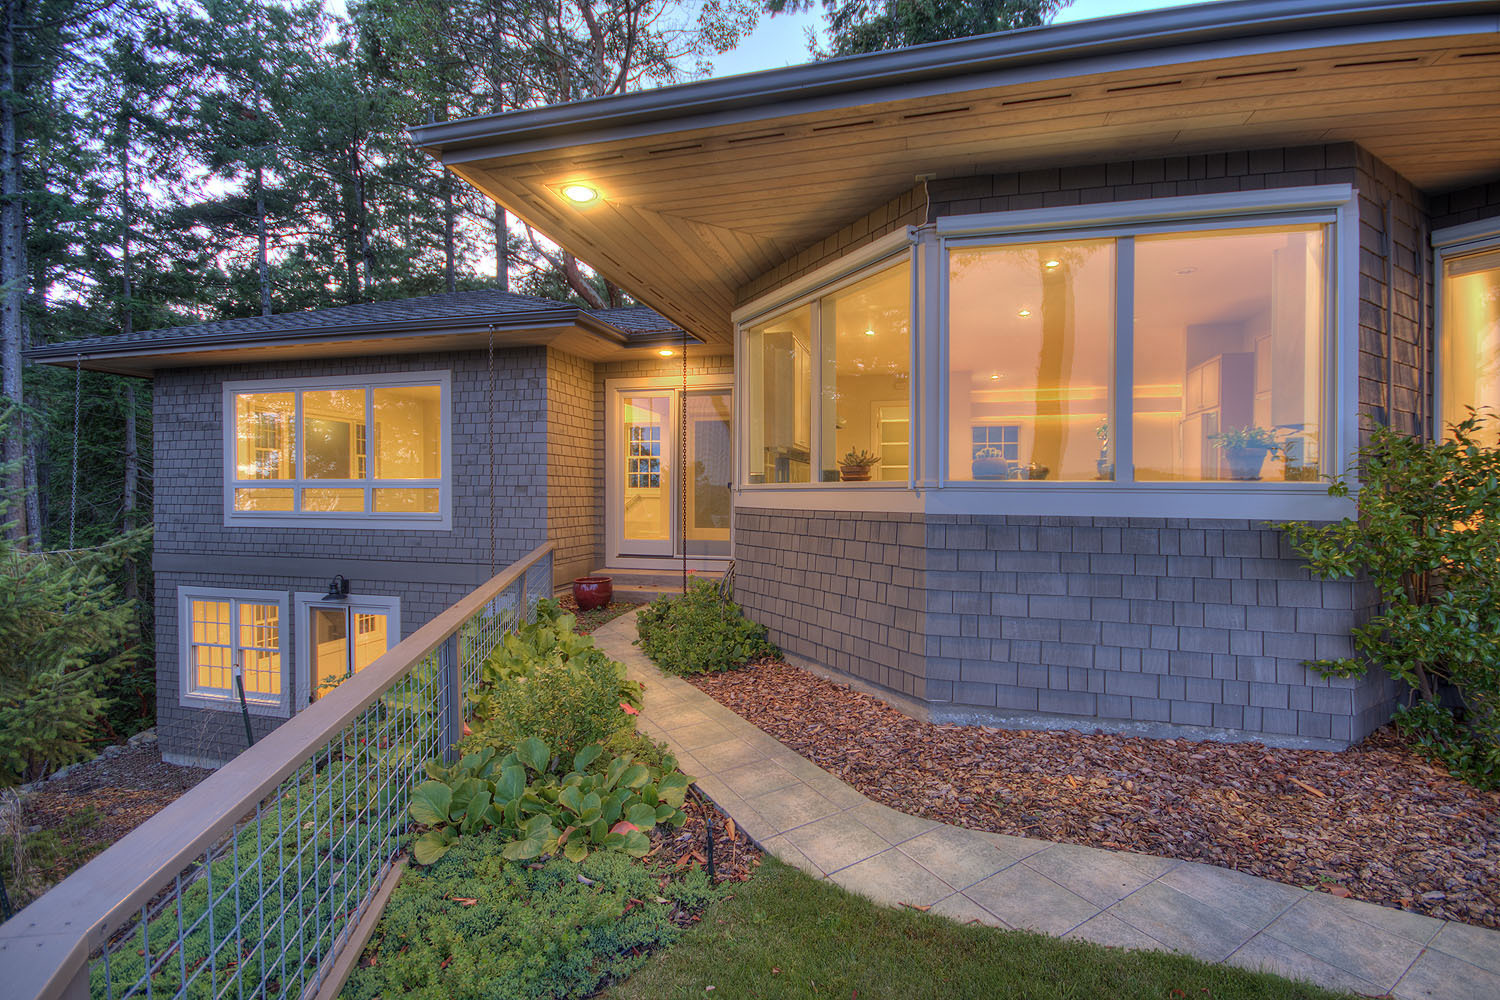 713 harborview, orcas island (photo 4)